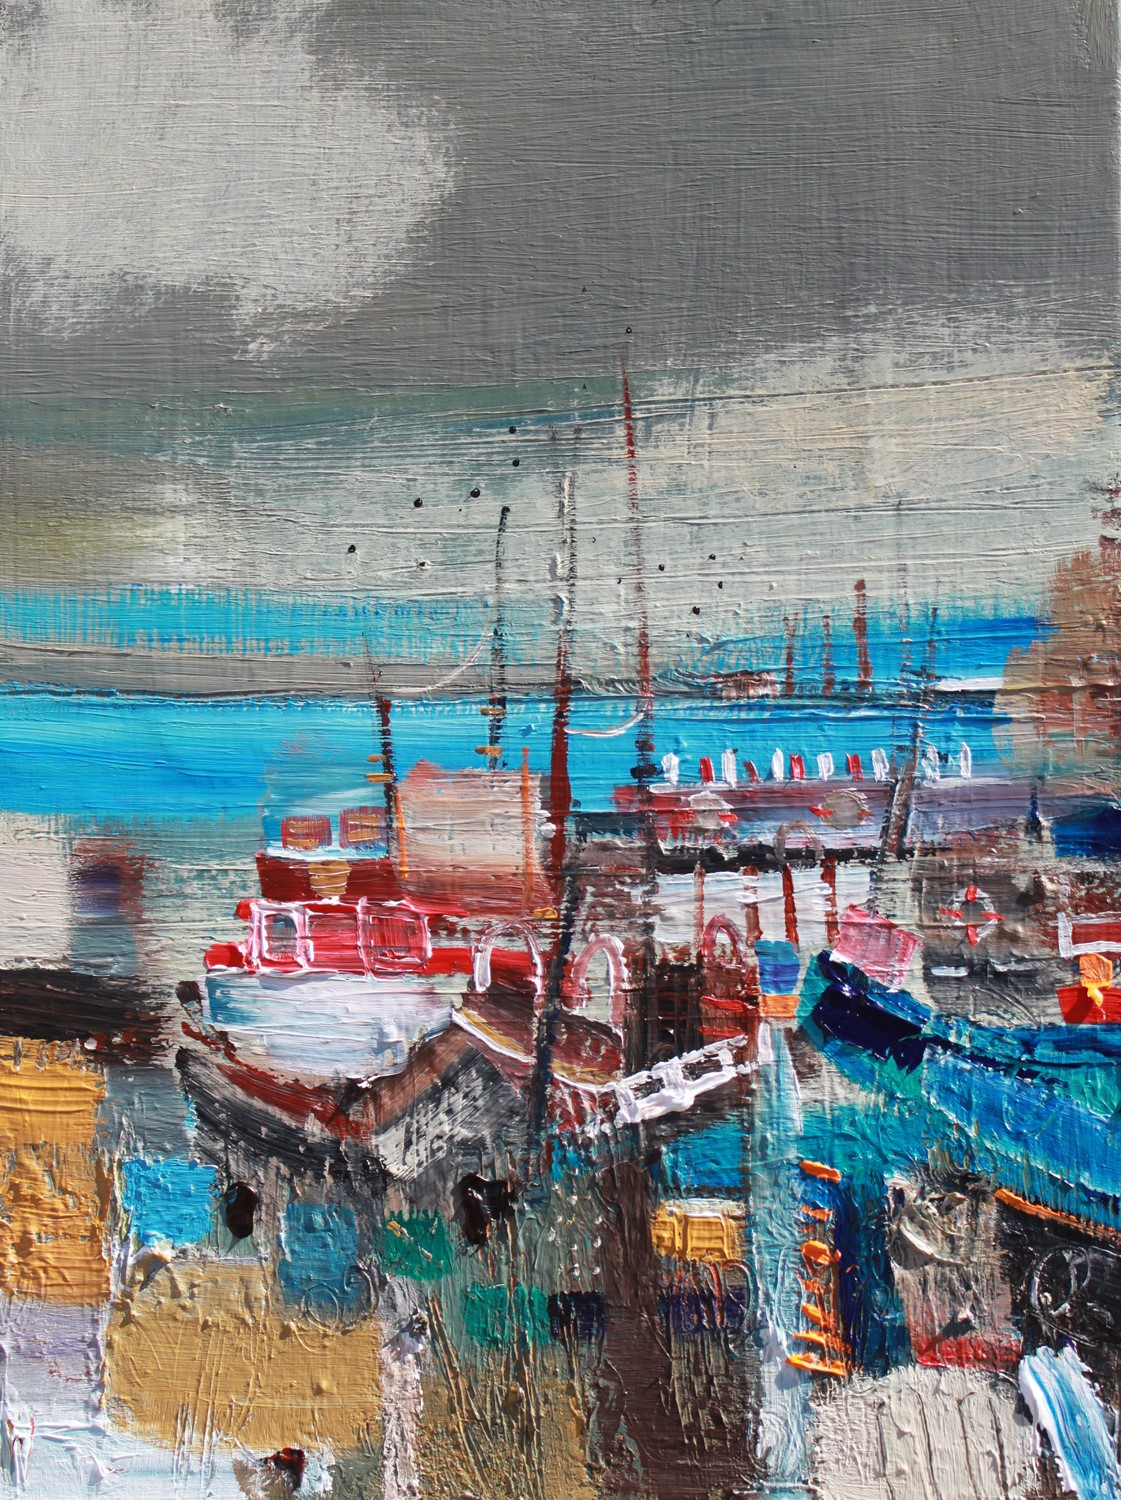 'Bits and Boats' by artist Rosanne Barr